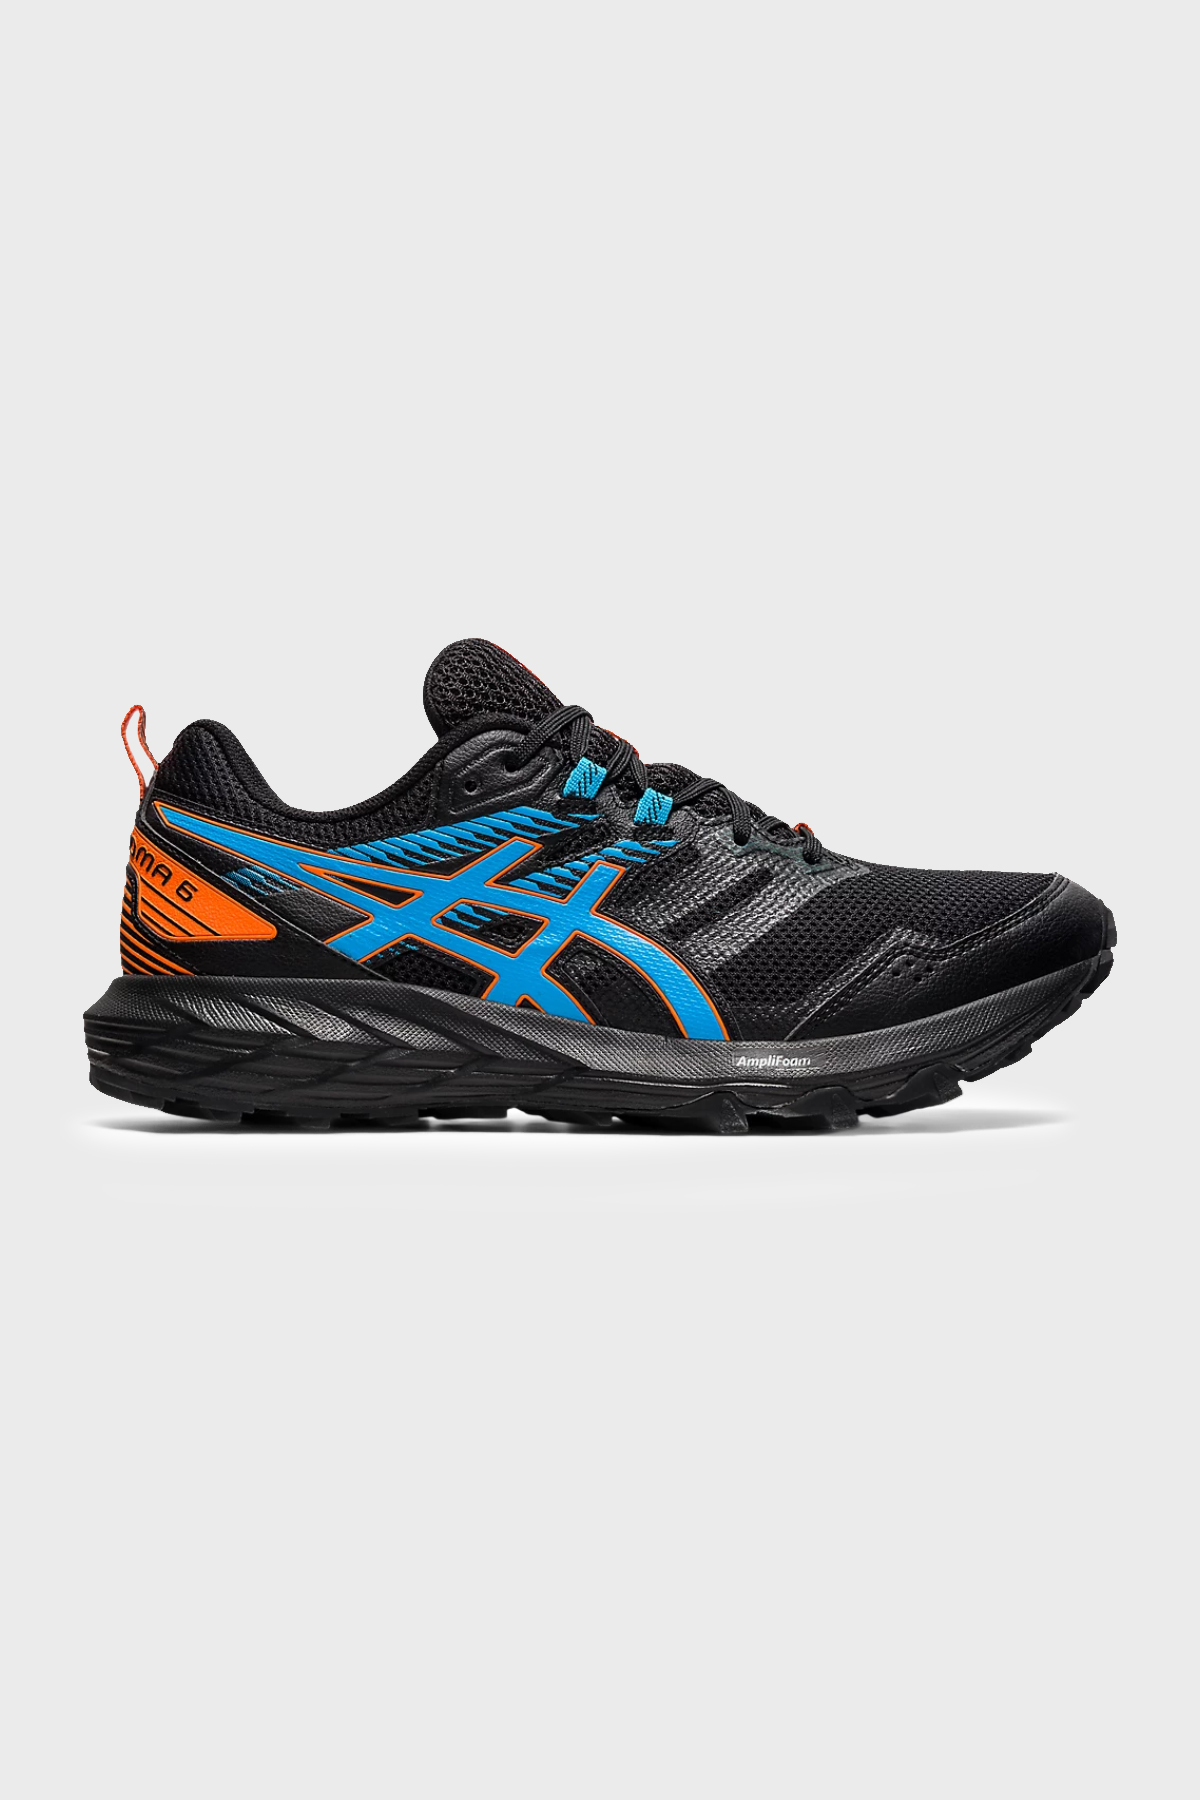 ASICS - GEL-SONOMA™ 6 - BLACK DIGITAL AQUA